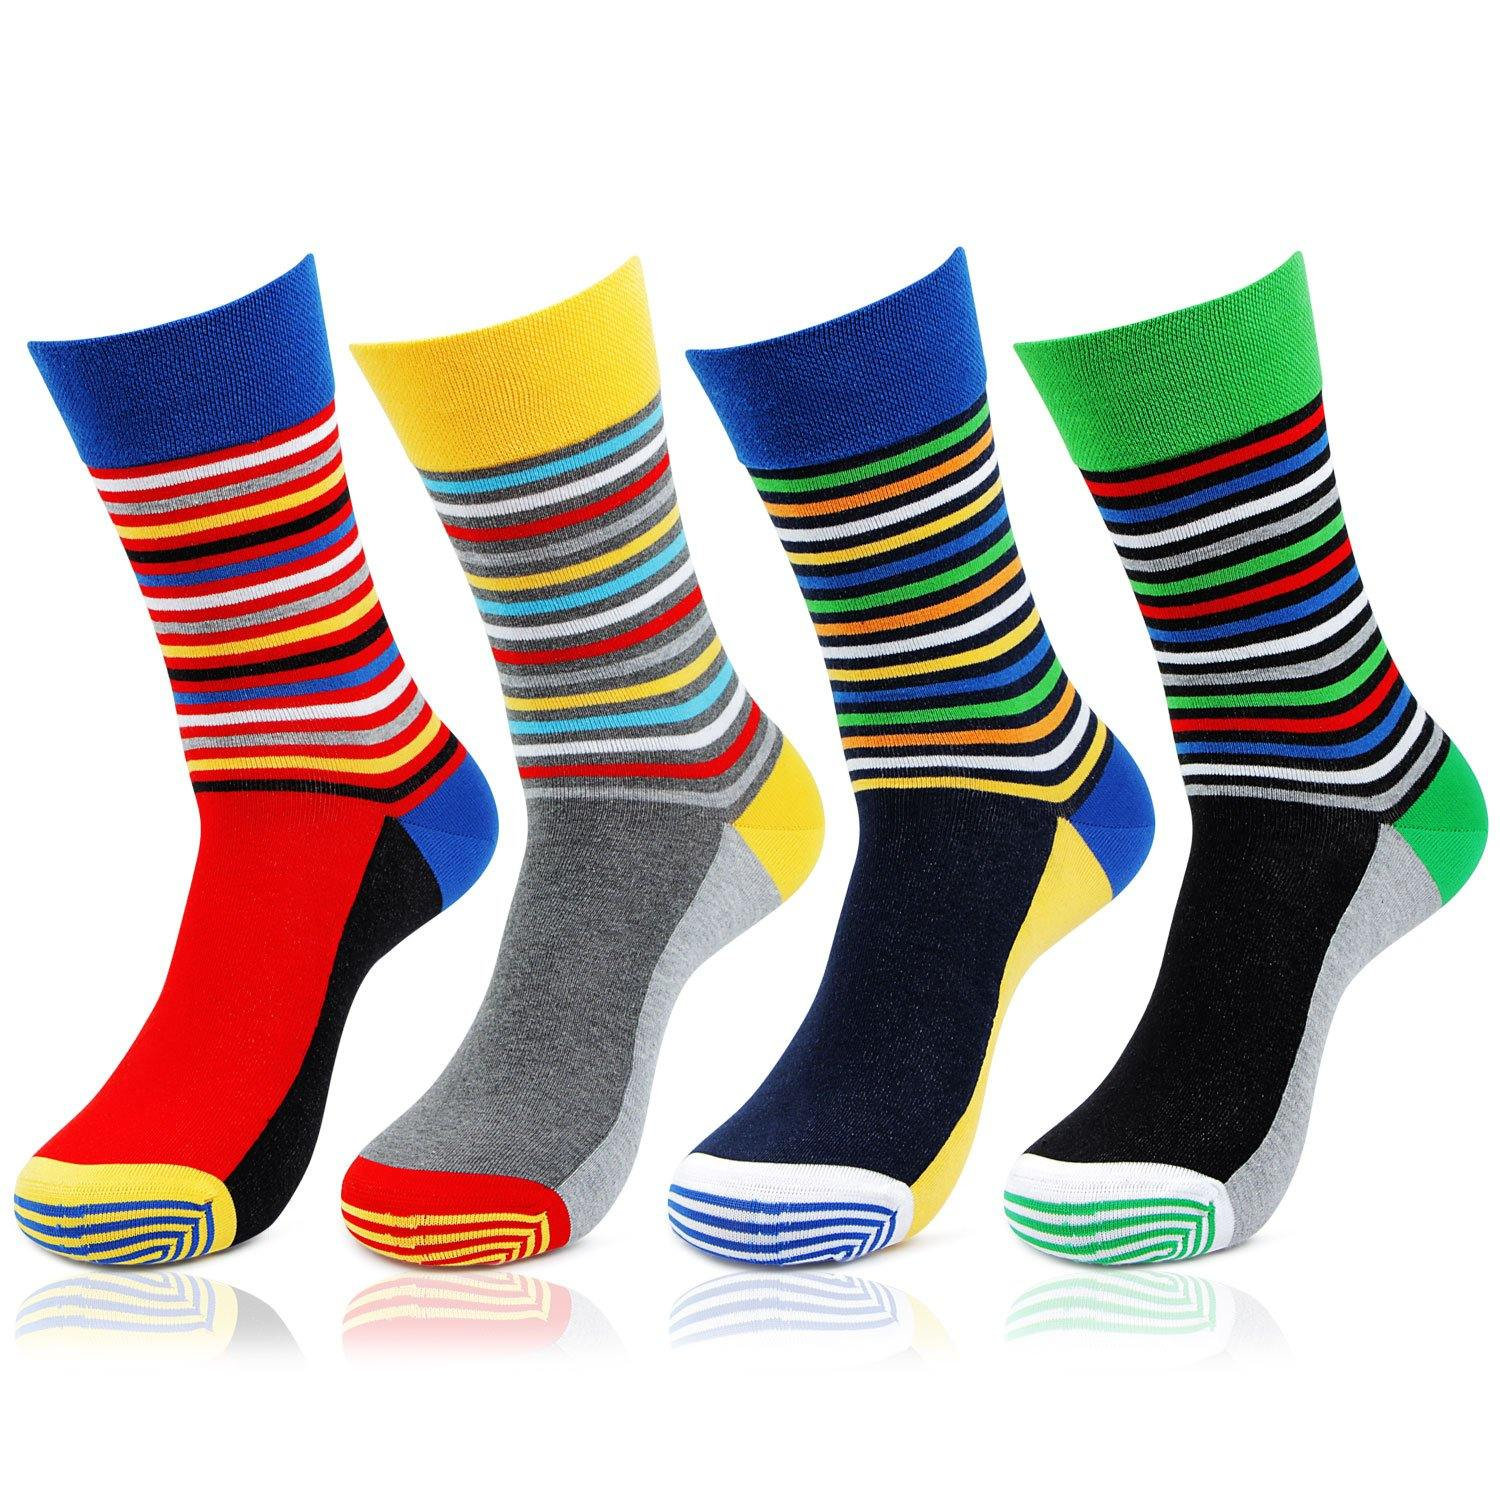 Men's Designer Bold socks - Pack of 4